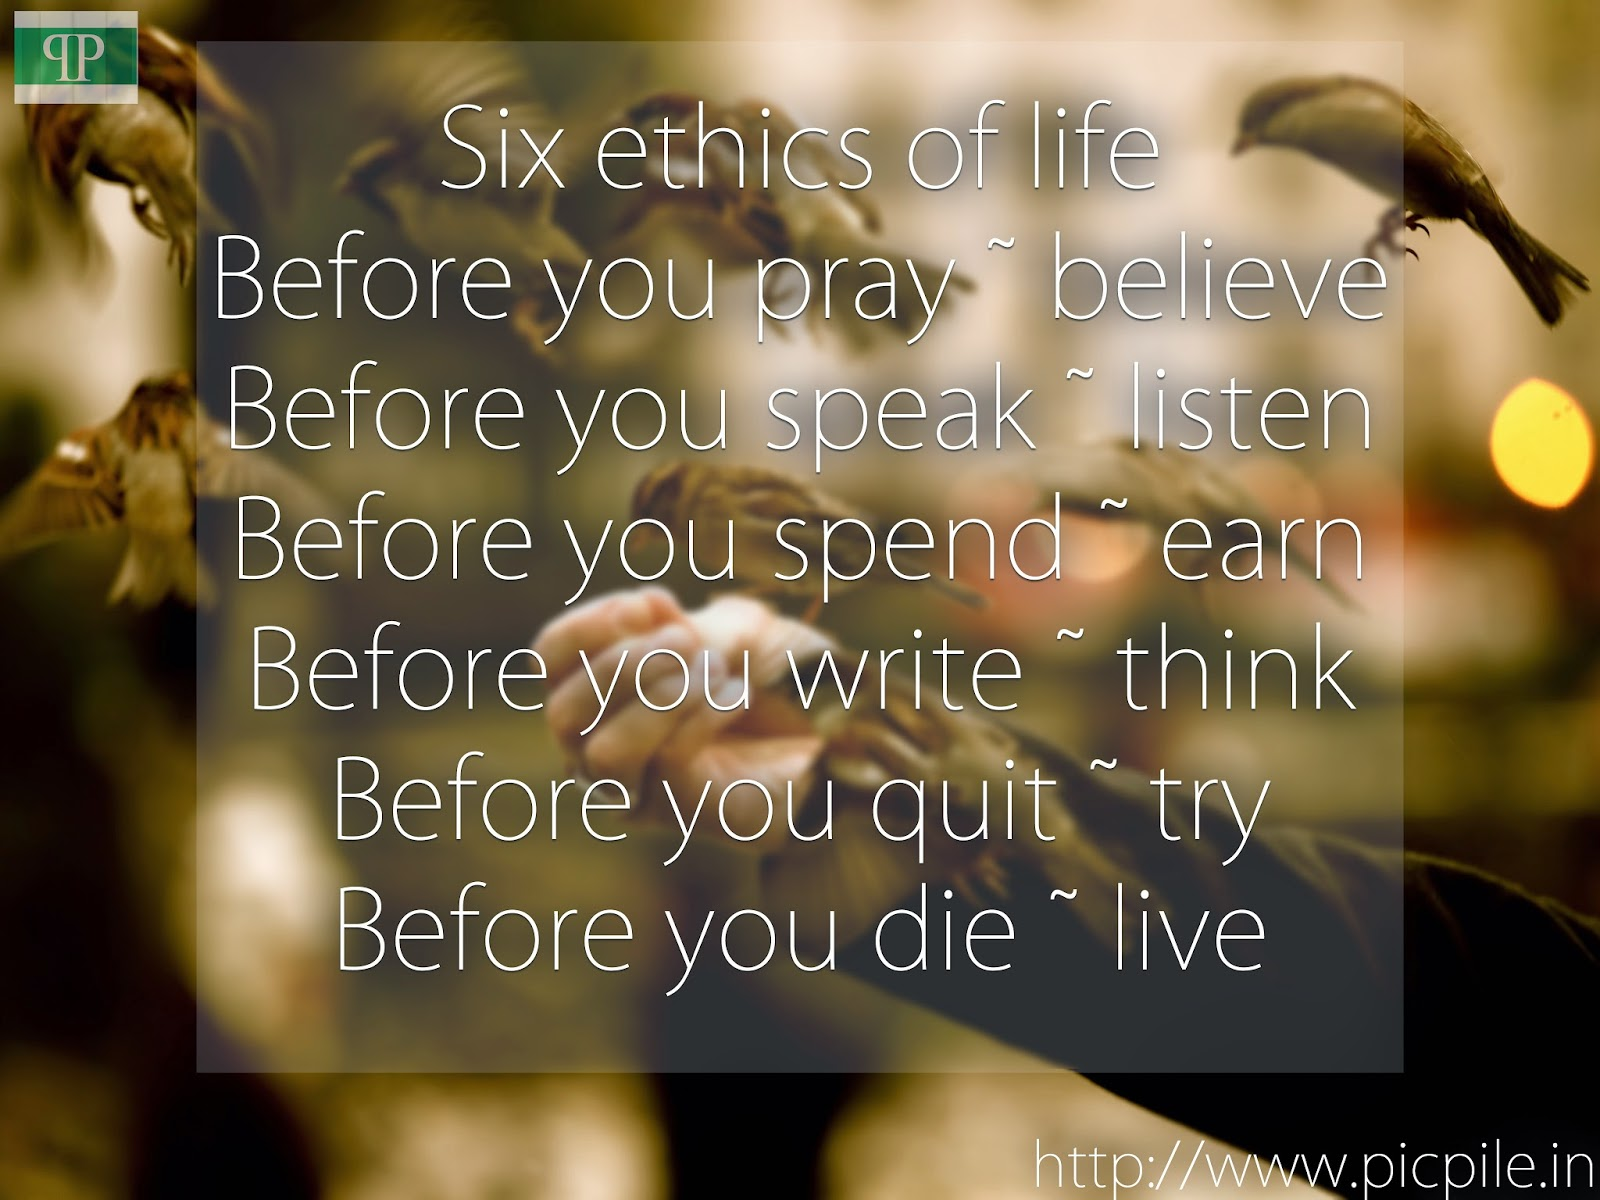 wallpapers images picpile six ethics of life that we may apply